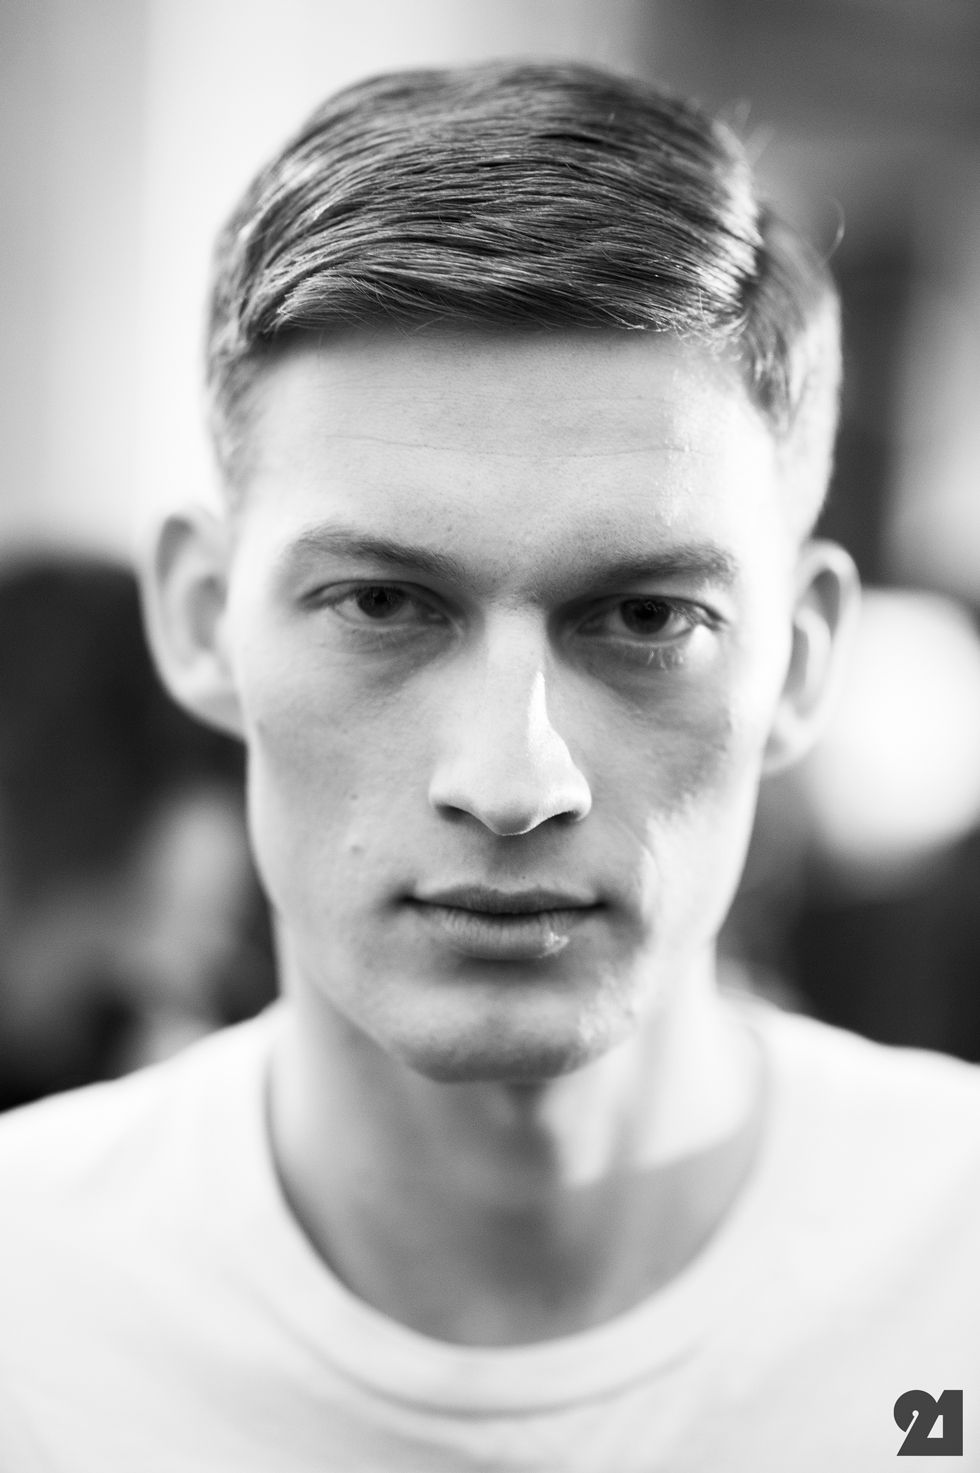 Bastian Theiry French Male Model For The Hubbs